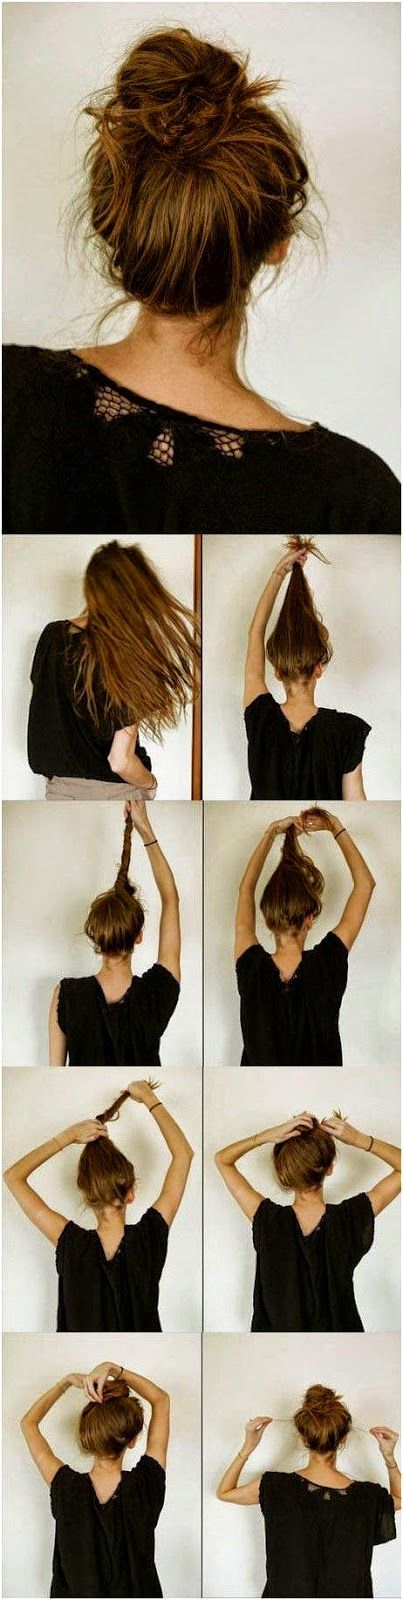 5 Easy Messy Buns For Long Hair Tutorial                                                                                                                                                                                 More